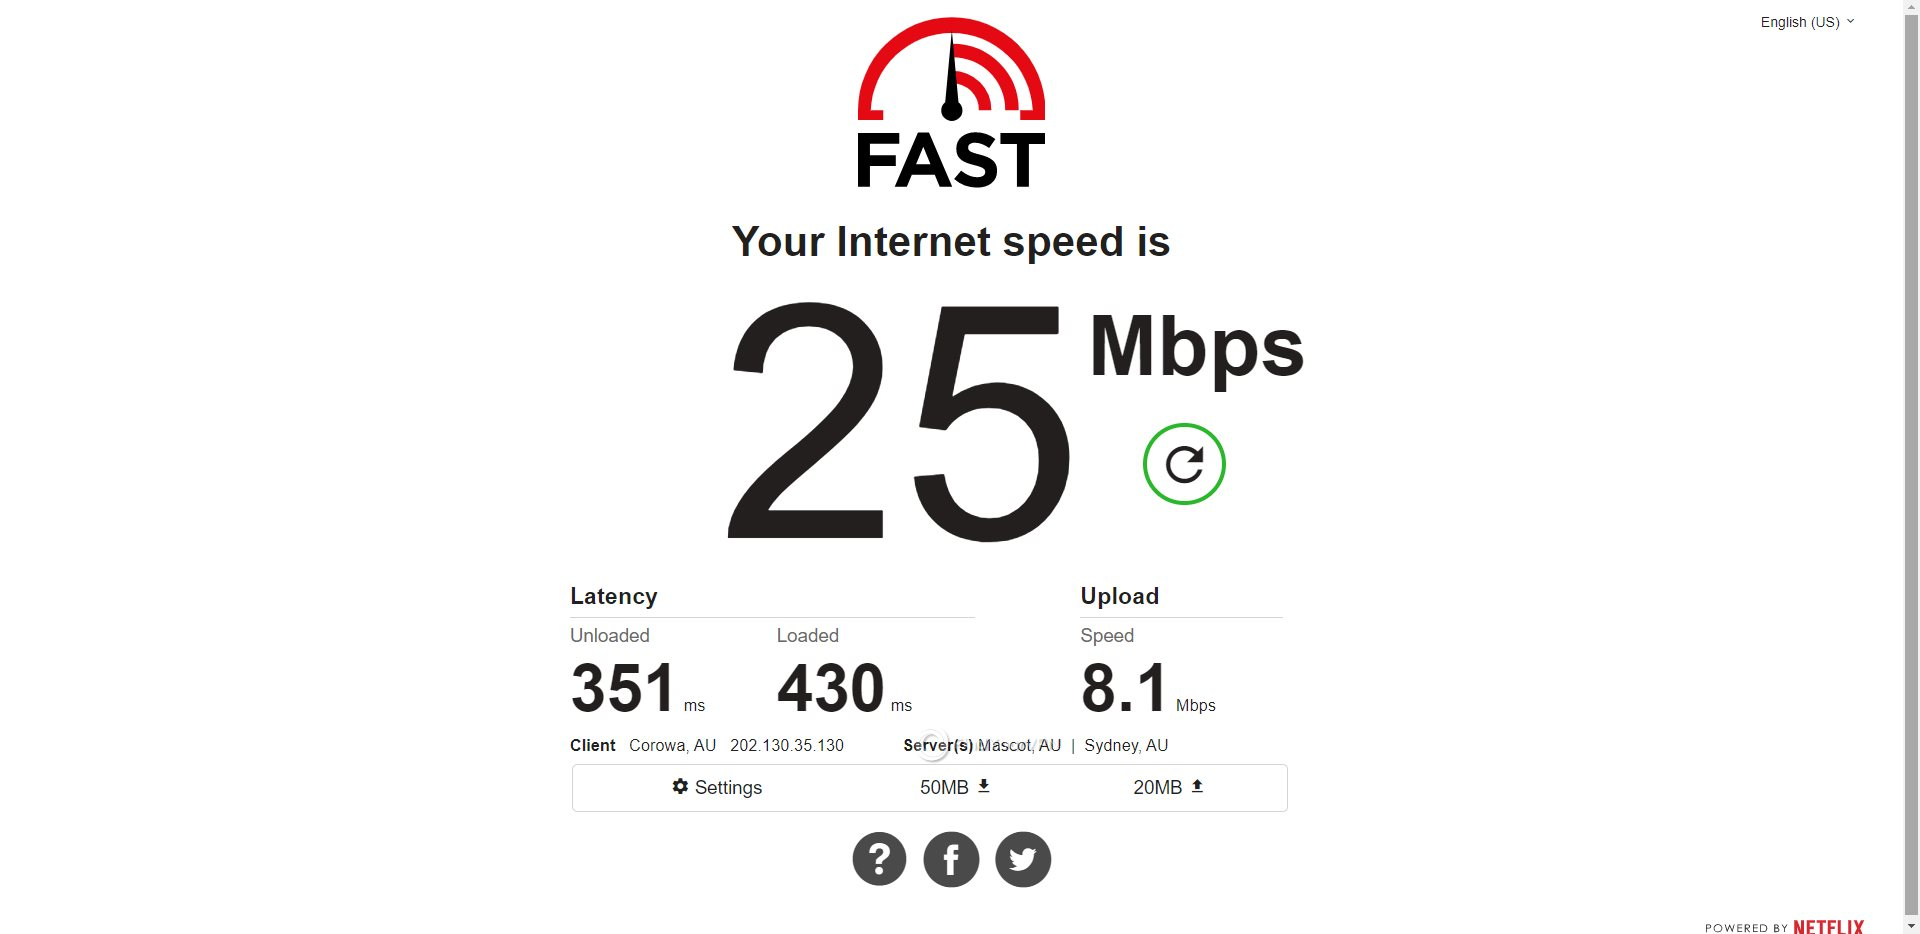 IVPN Australia Speed Test Results